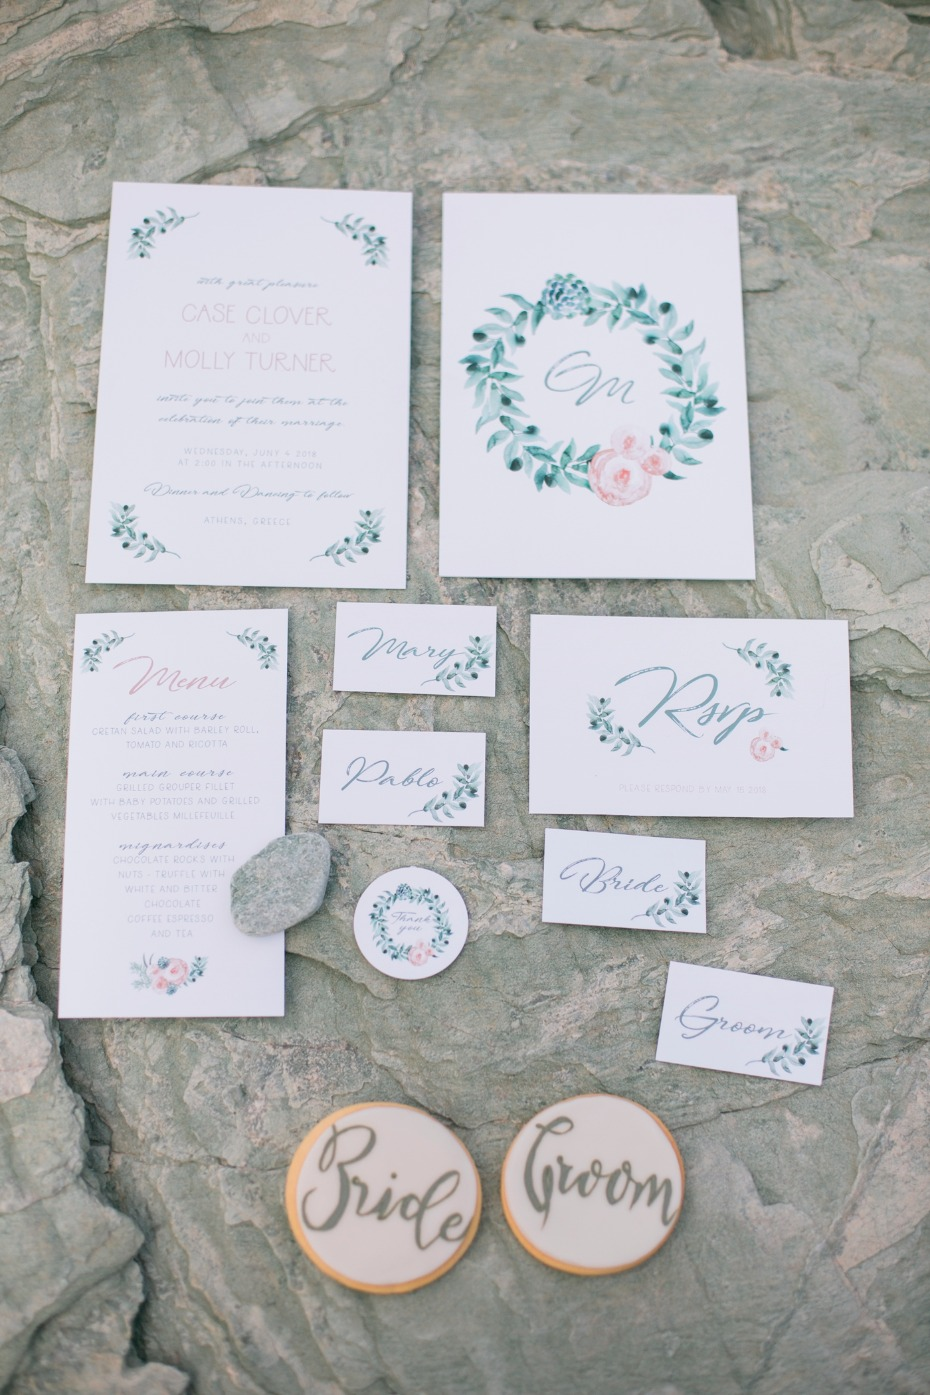 Hand-painted invitation suite